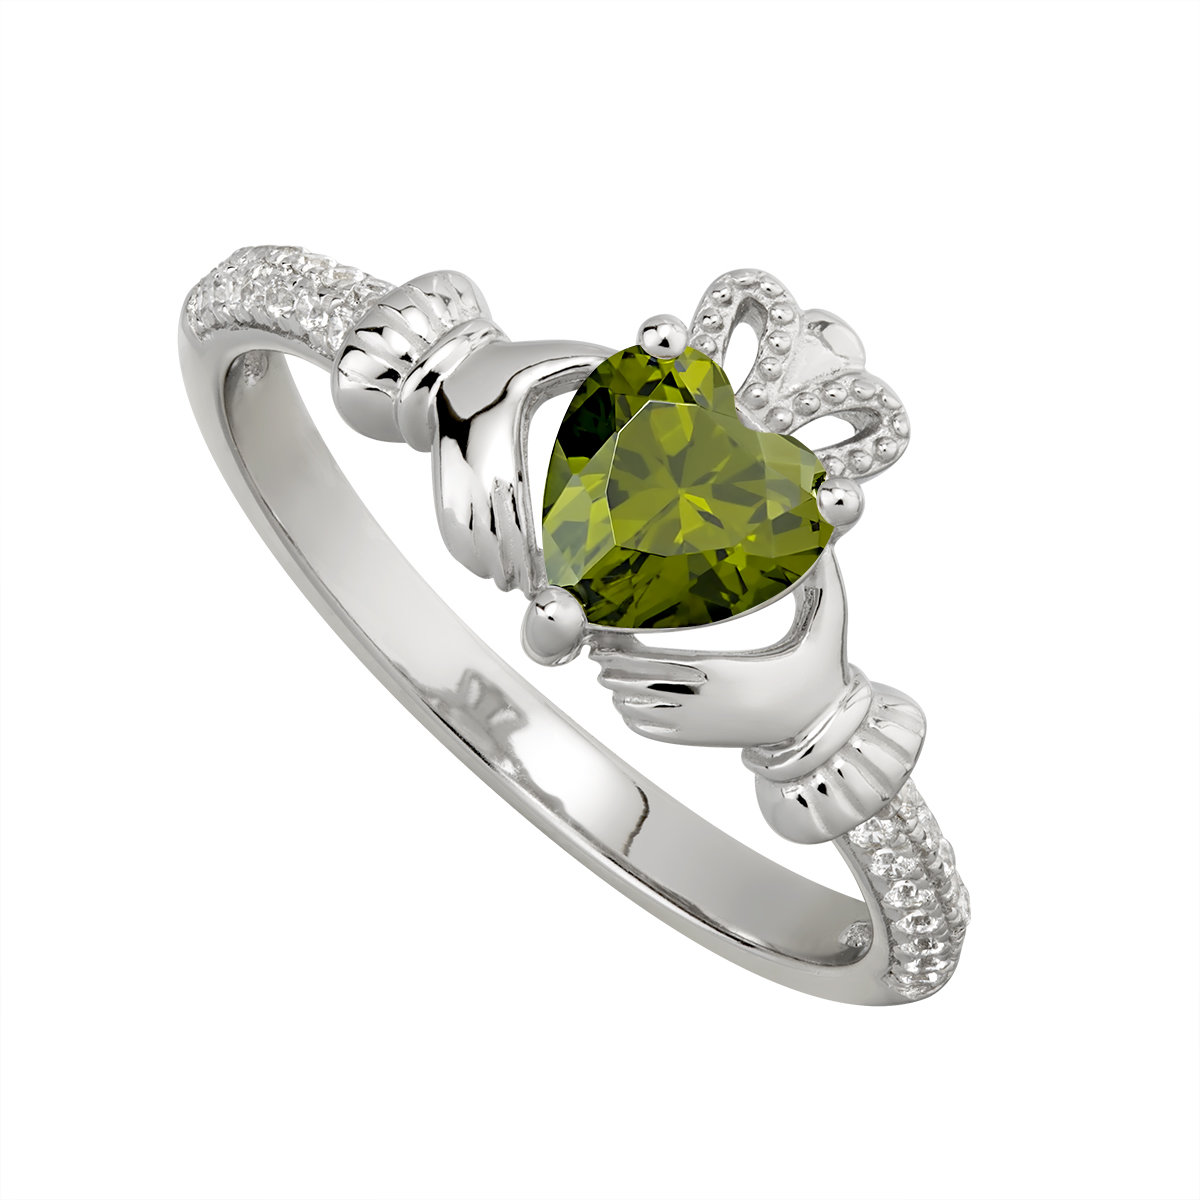 sterling silver claddagh ring august birthstone s2106208 from Solvar